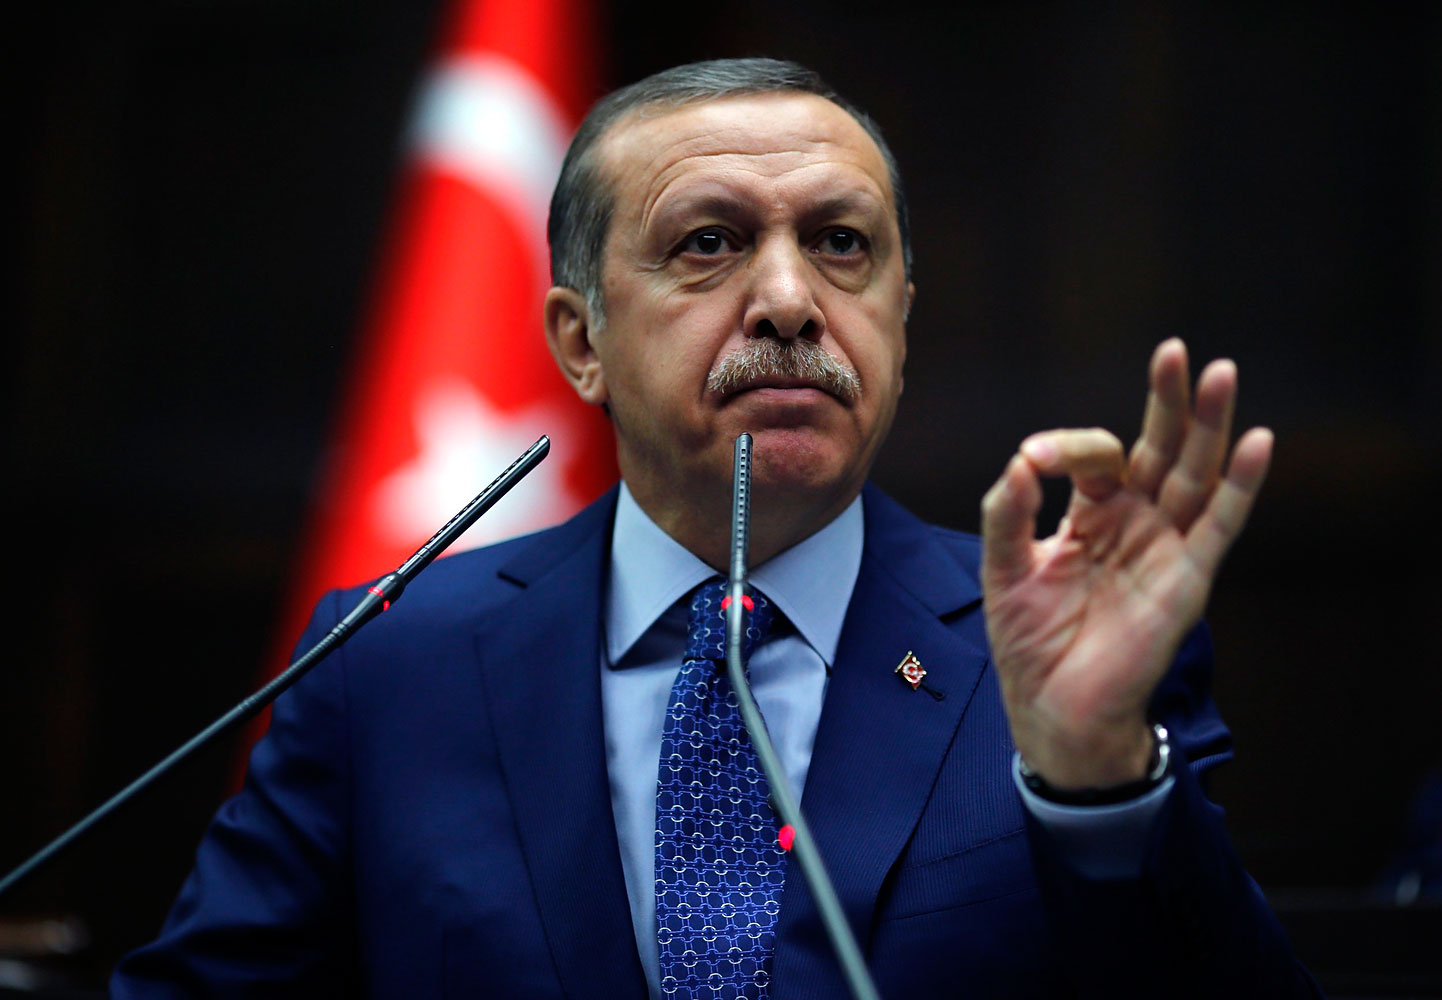 Turkey's Prime Minister Tayyip Erdogan addresses members of parliament from his ruling AK Party (AKP) during a meeting at the Turkish parliament in Ankara on Feb. 18, 2014.